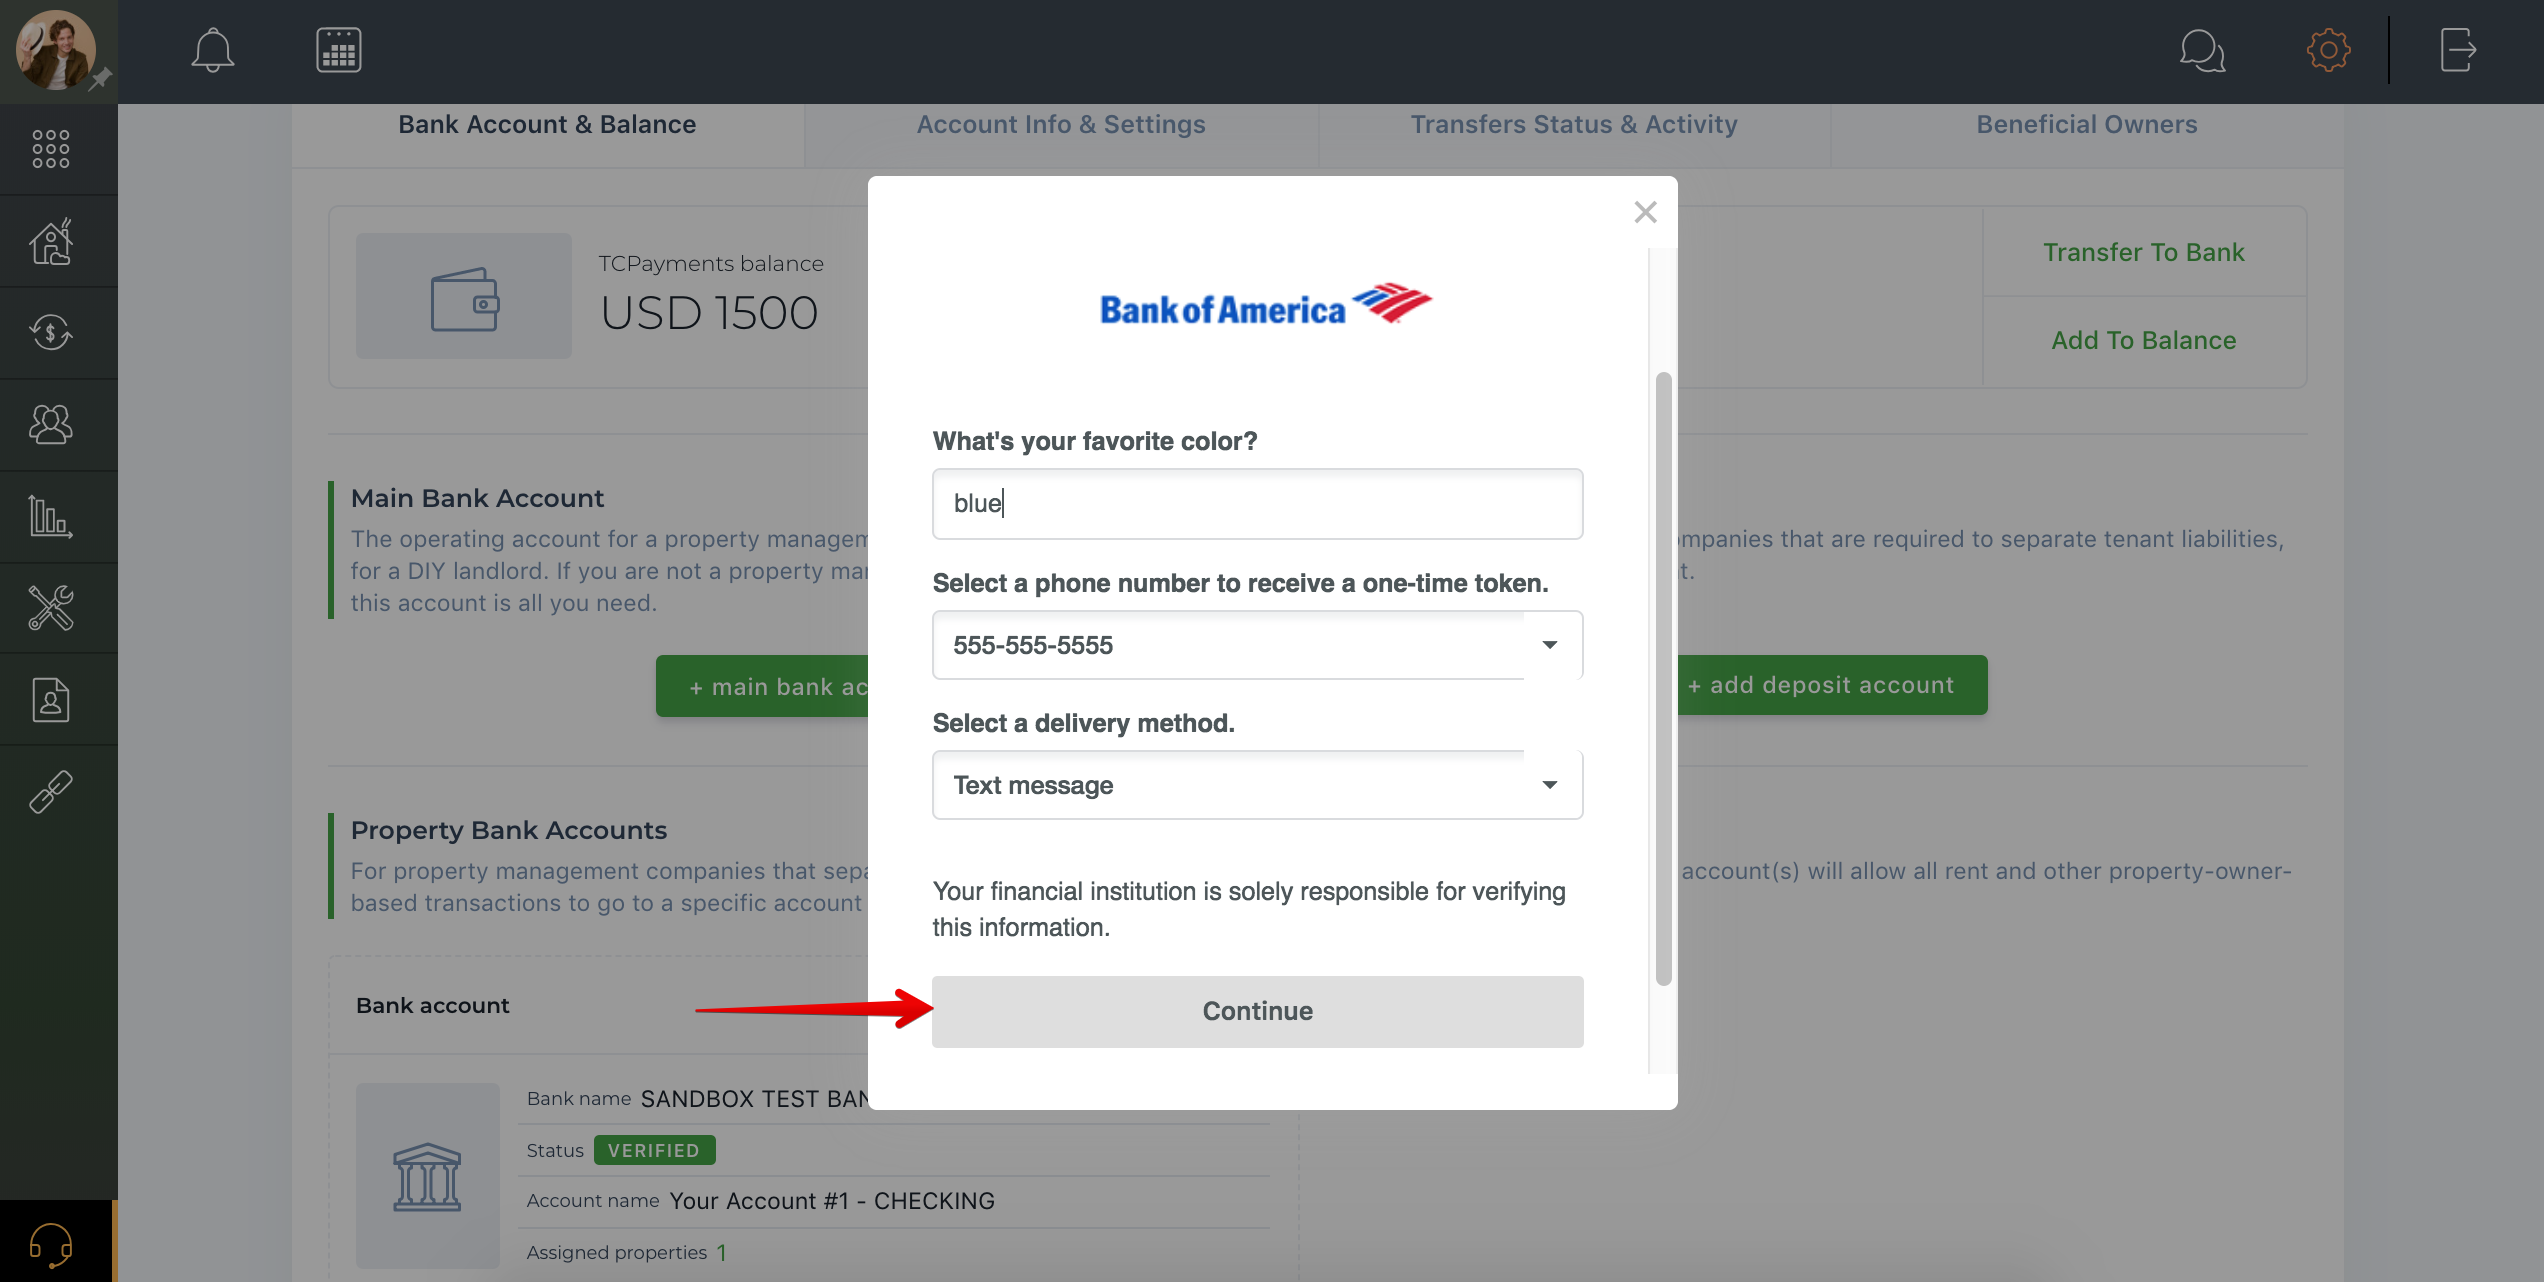 How to add a bank account?